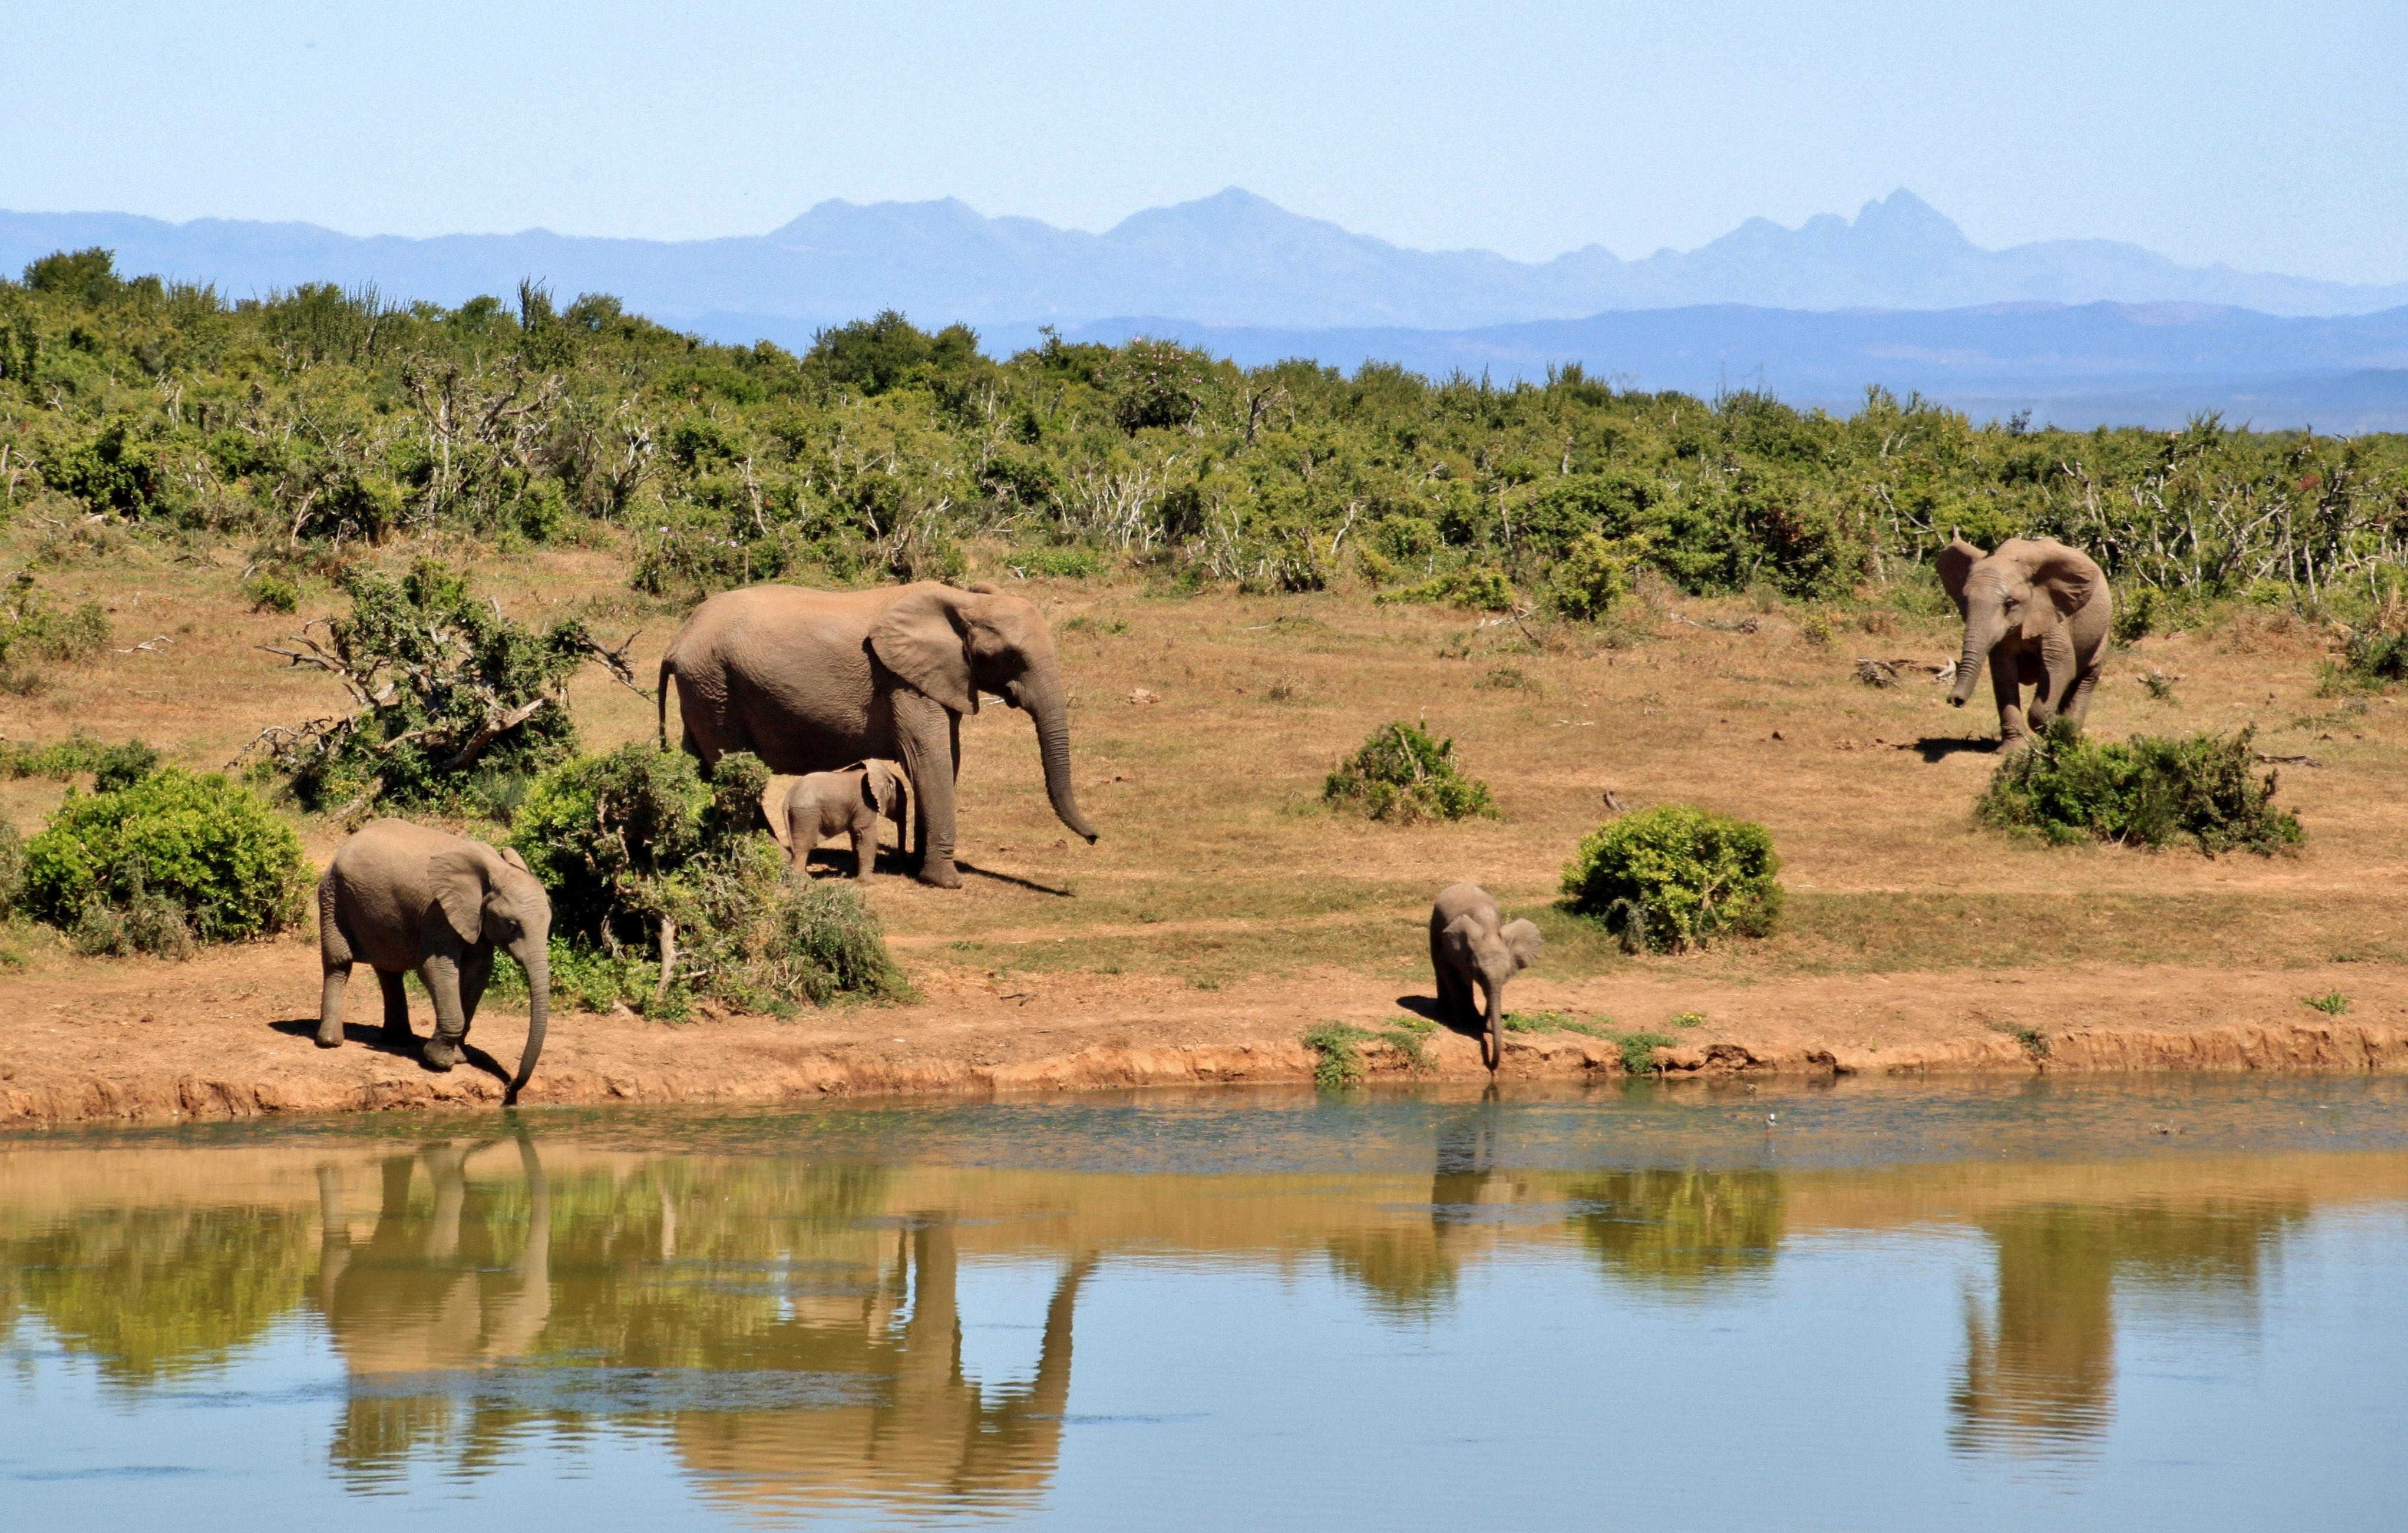 Gray Elephants Near Body of Water during Daytime, Africa, Animals, Elephants, Forest, HQ Photo